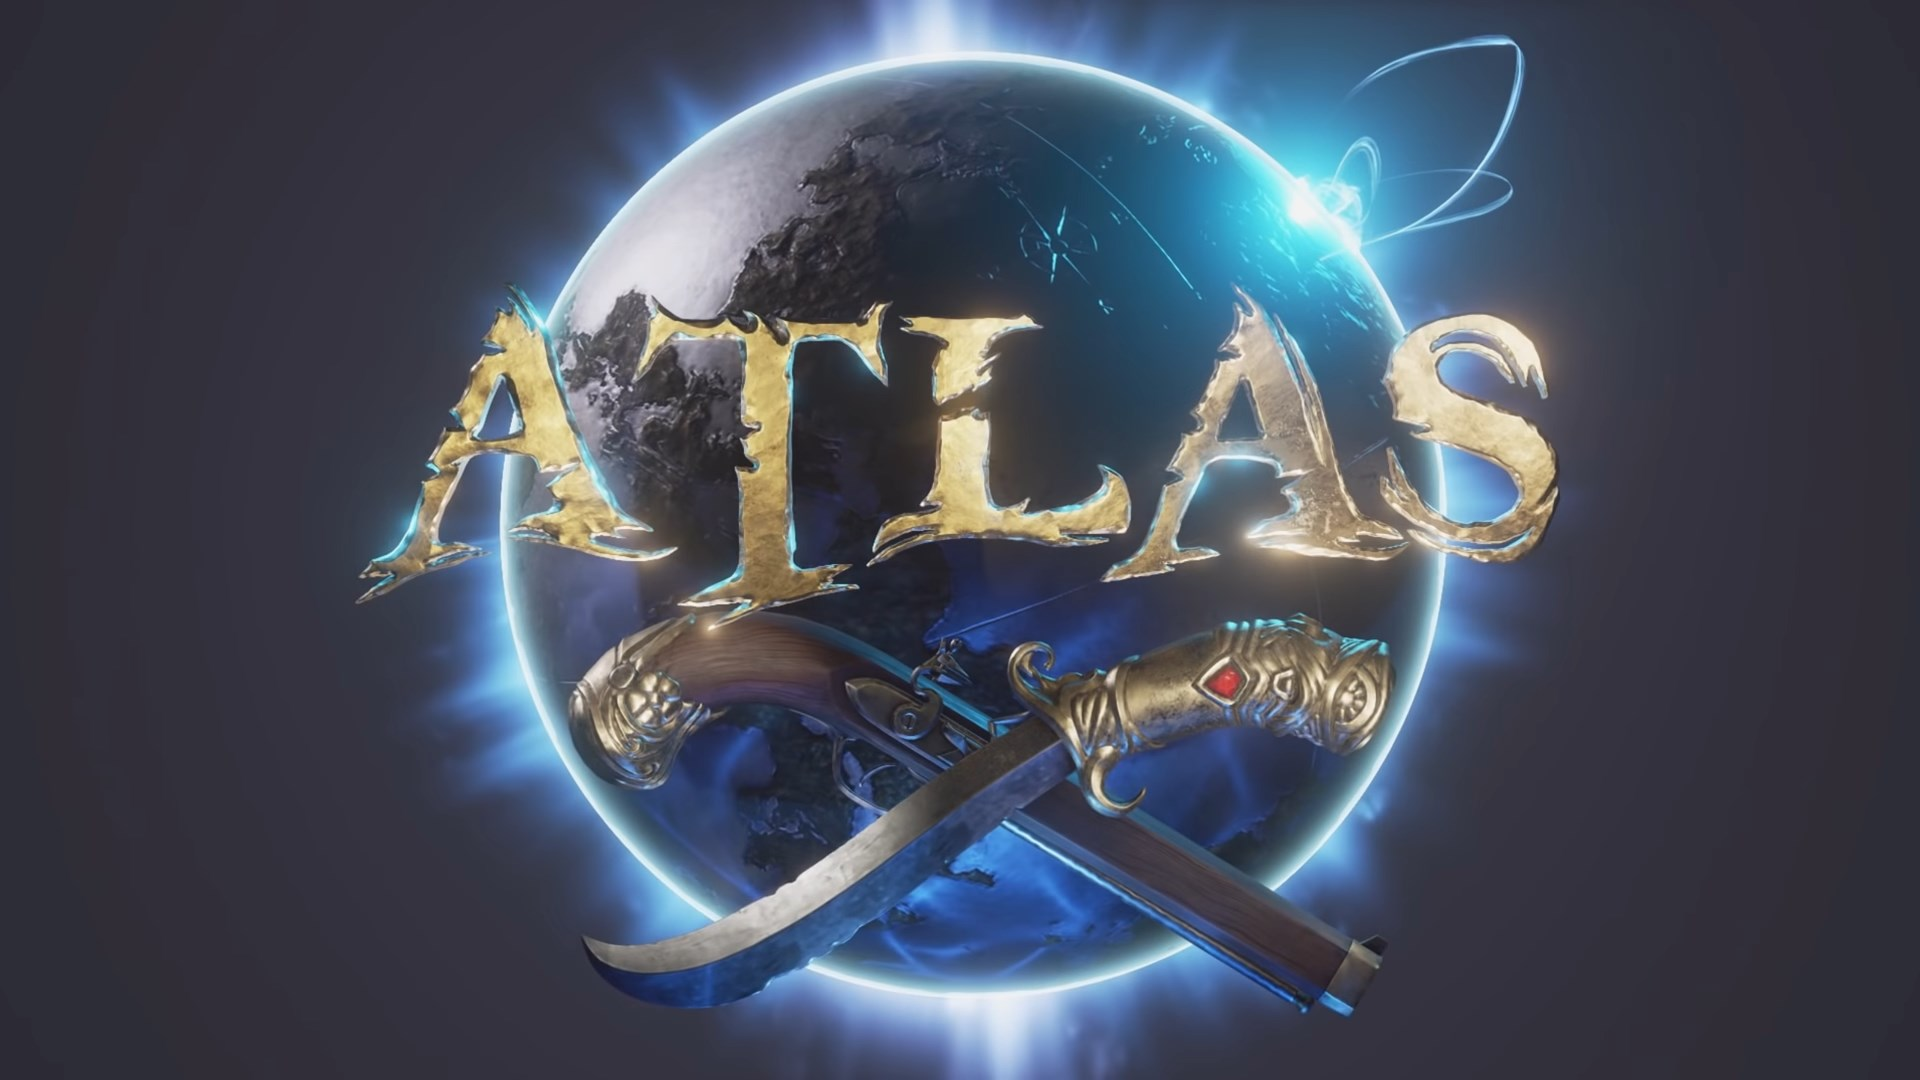 Hackers wreak chaos in popular multiplayer game Atlas   Avira Blog 1920x1080